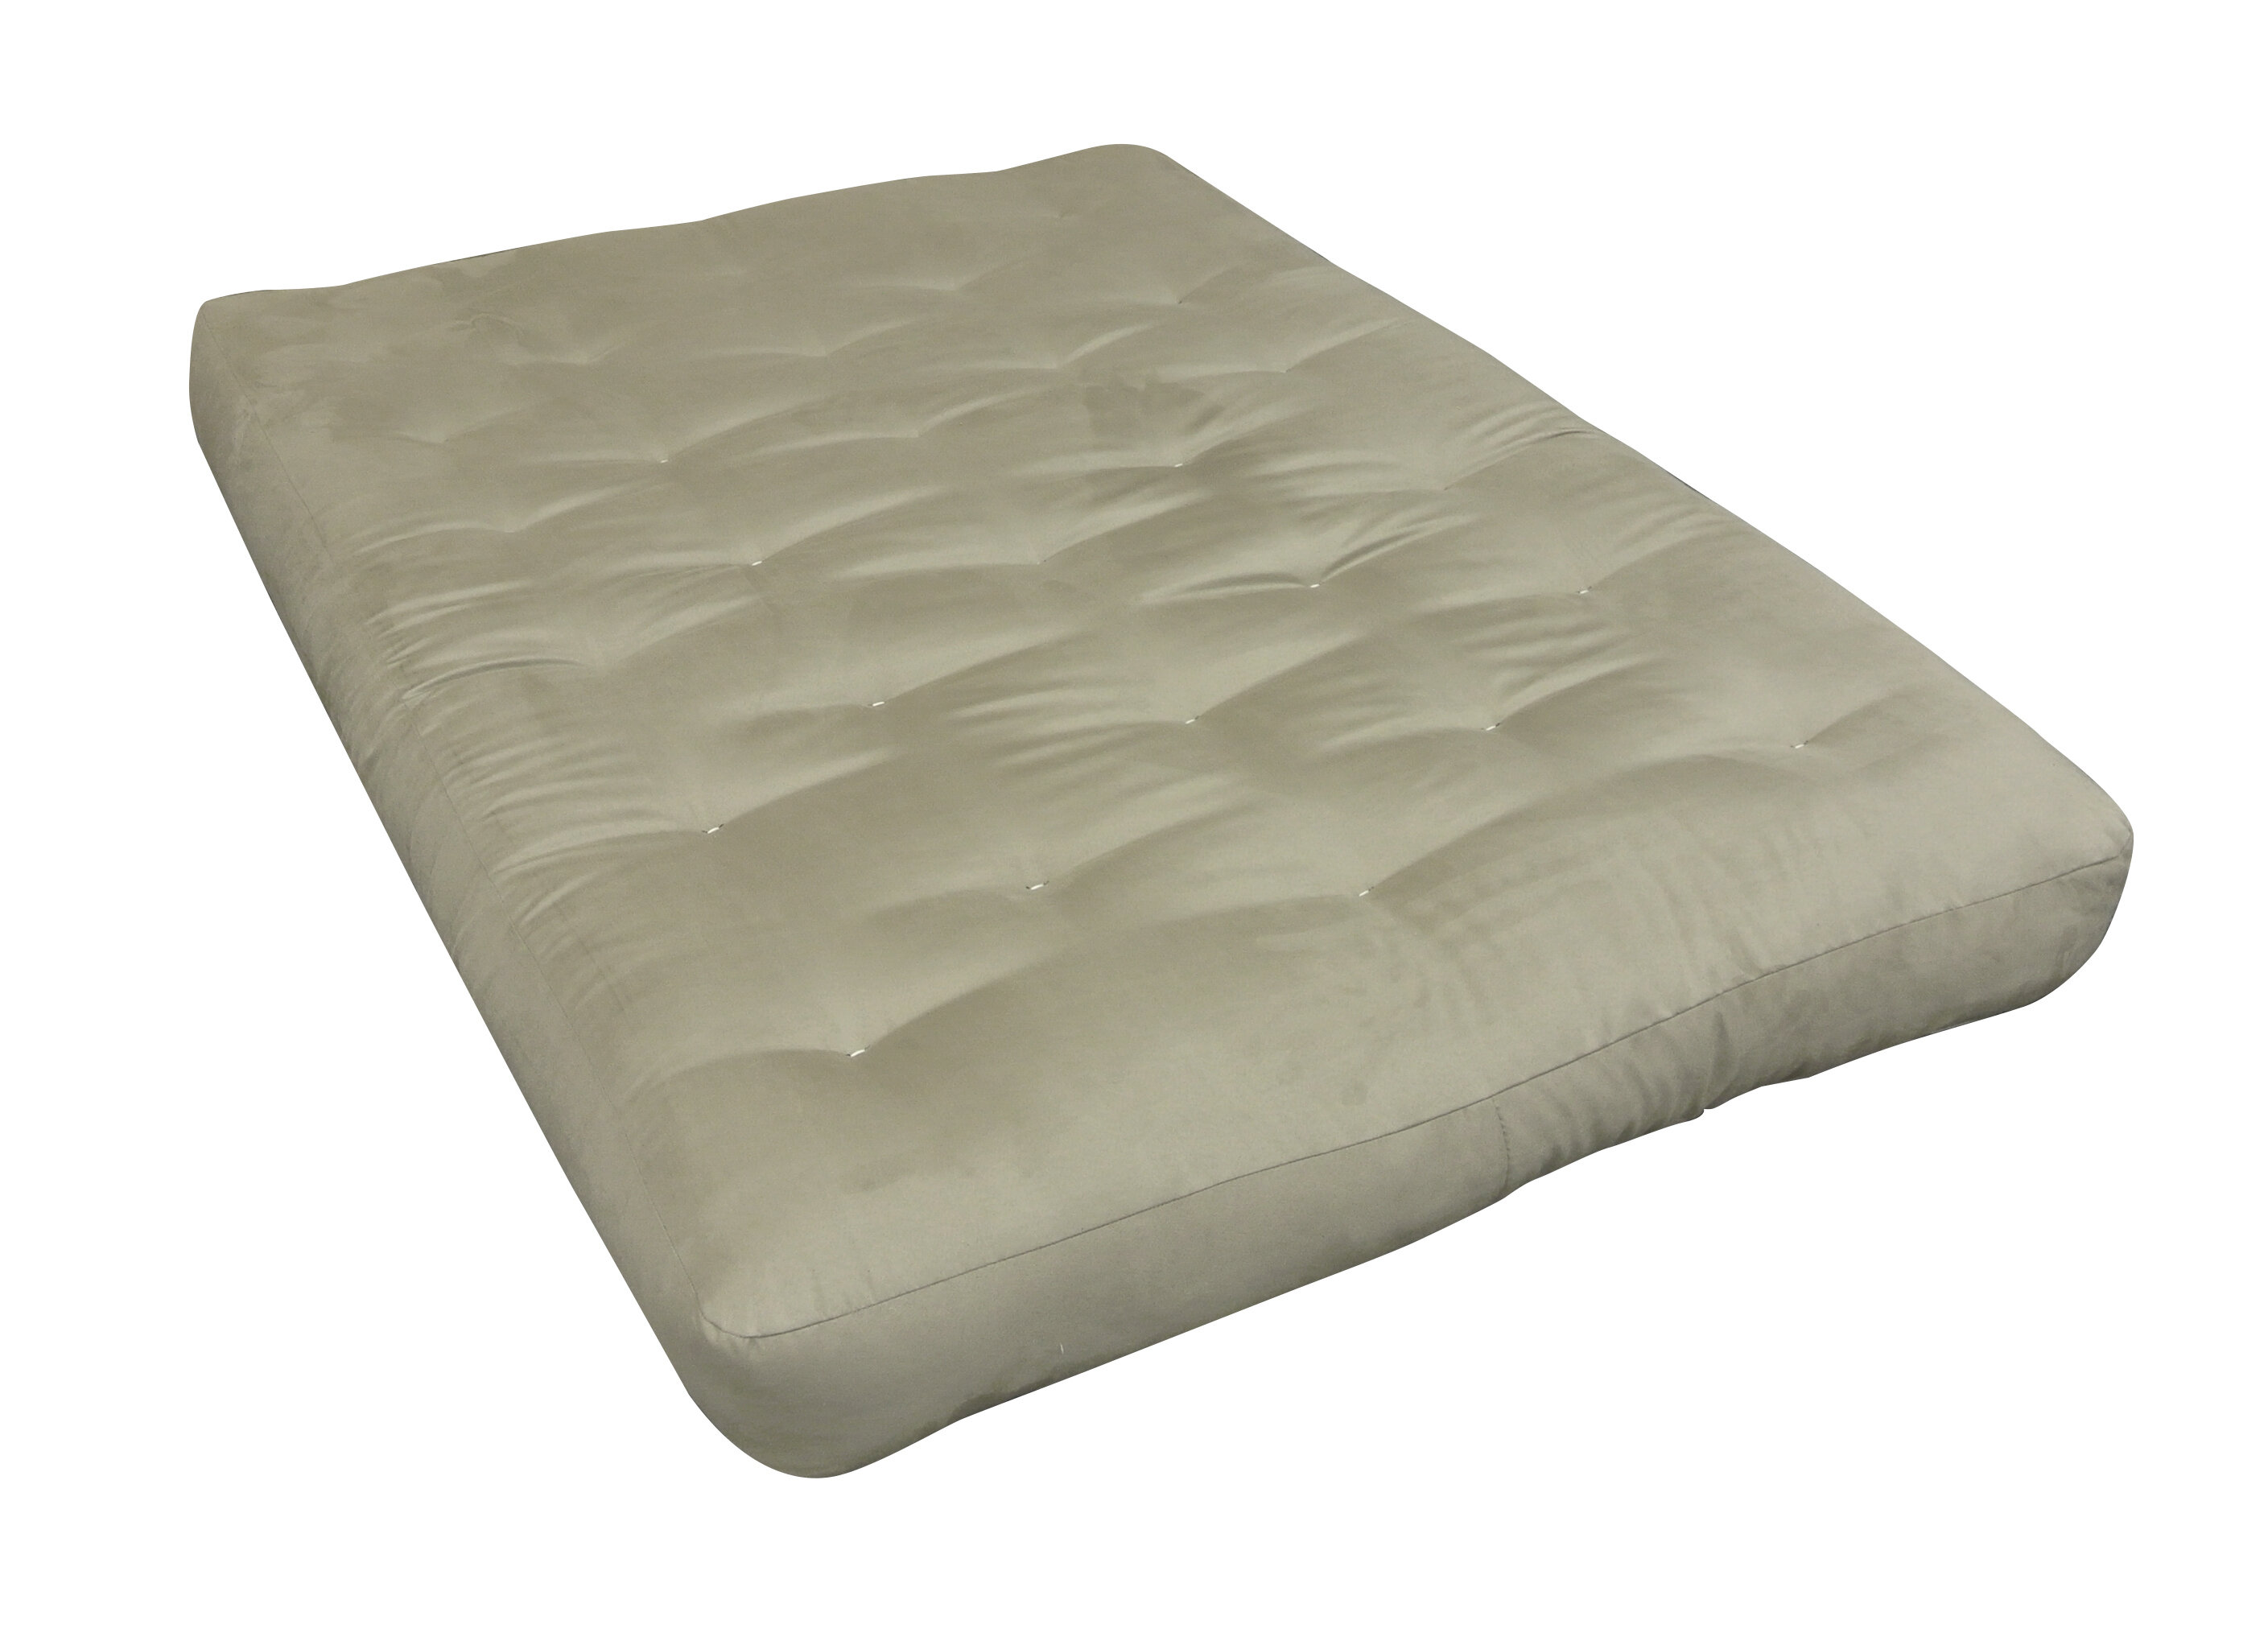 tufted how most whitebg our find mattress comfortable futon the picks and to